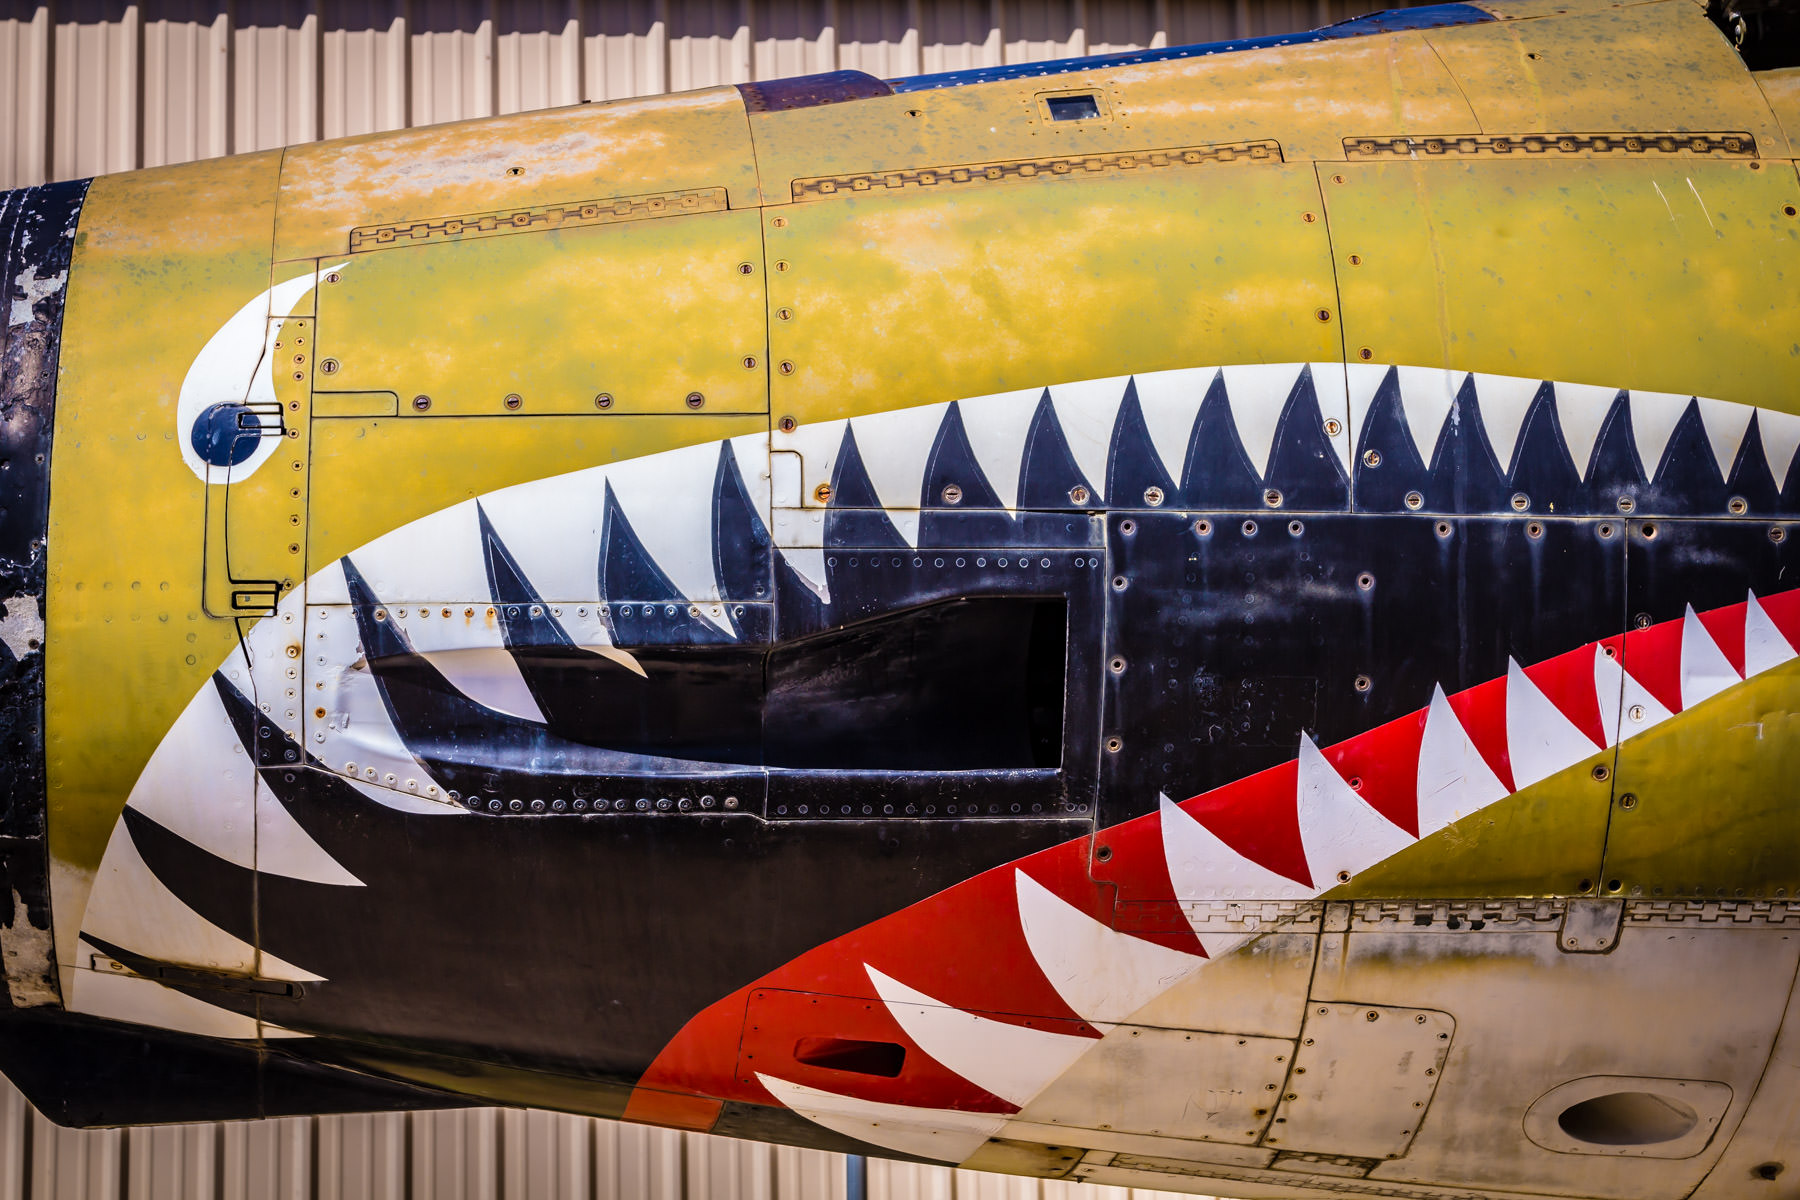 Nose art on a Republic F-105F Thunderchief at the Cavanaugh Flight Museum, Addison, Texas.